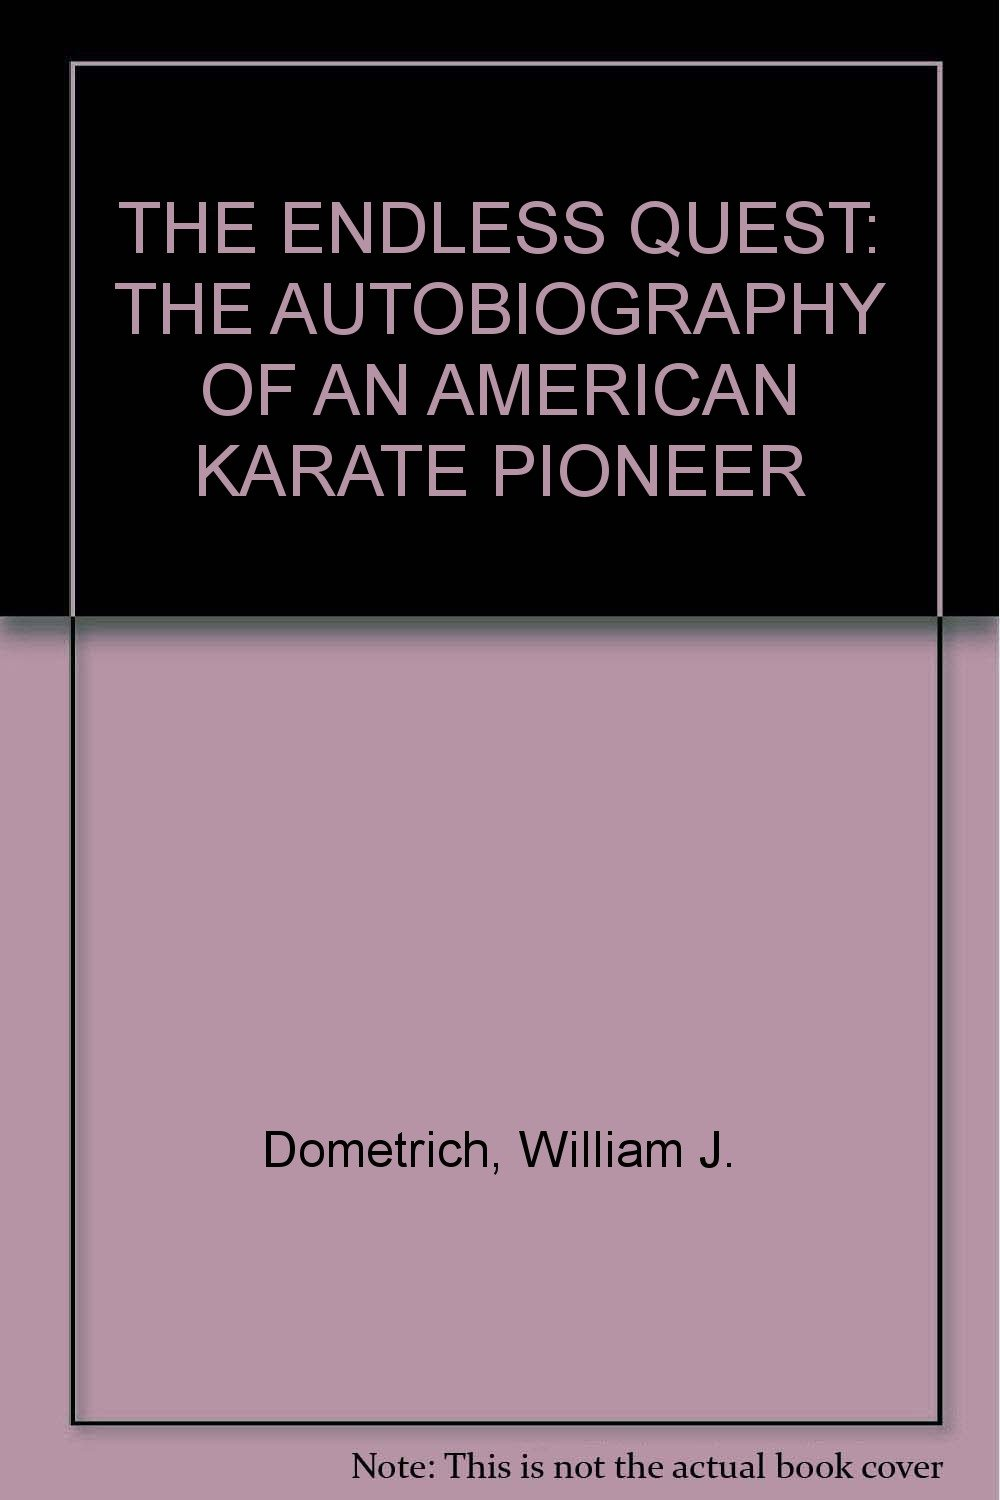 THE ENDLESS QUEST: THE AUTOBIOGRAPHY OF AN AMERICAN KARATE PIONEER pdf